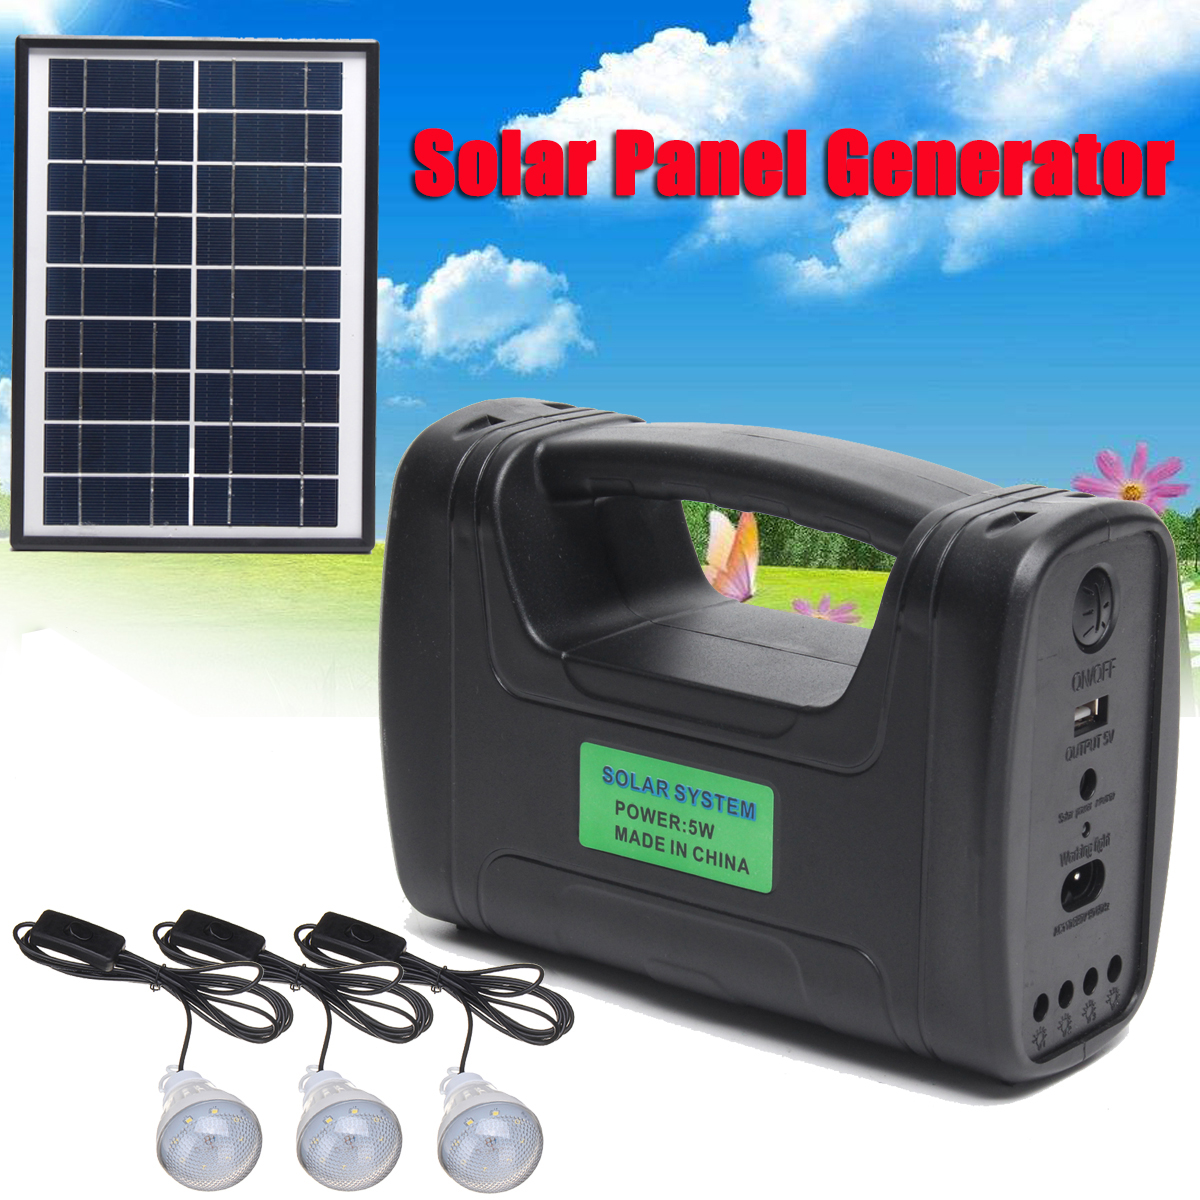 Portable Solar Panels Charging Generator Power System 5W Mini Outdoor Power Home Outdoor LED Lighting System 110-220V клавиатура a4tech bloody b120 black usb